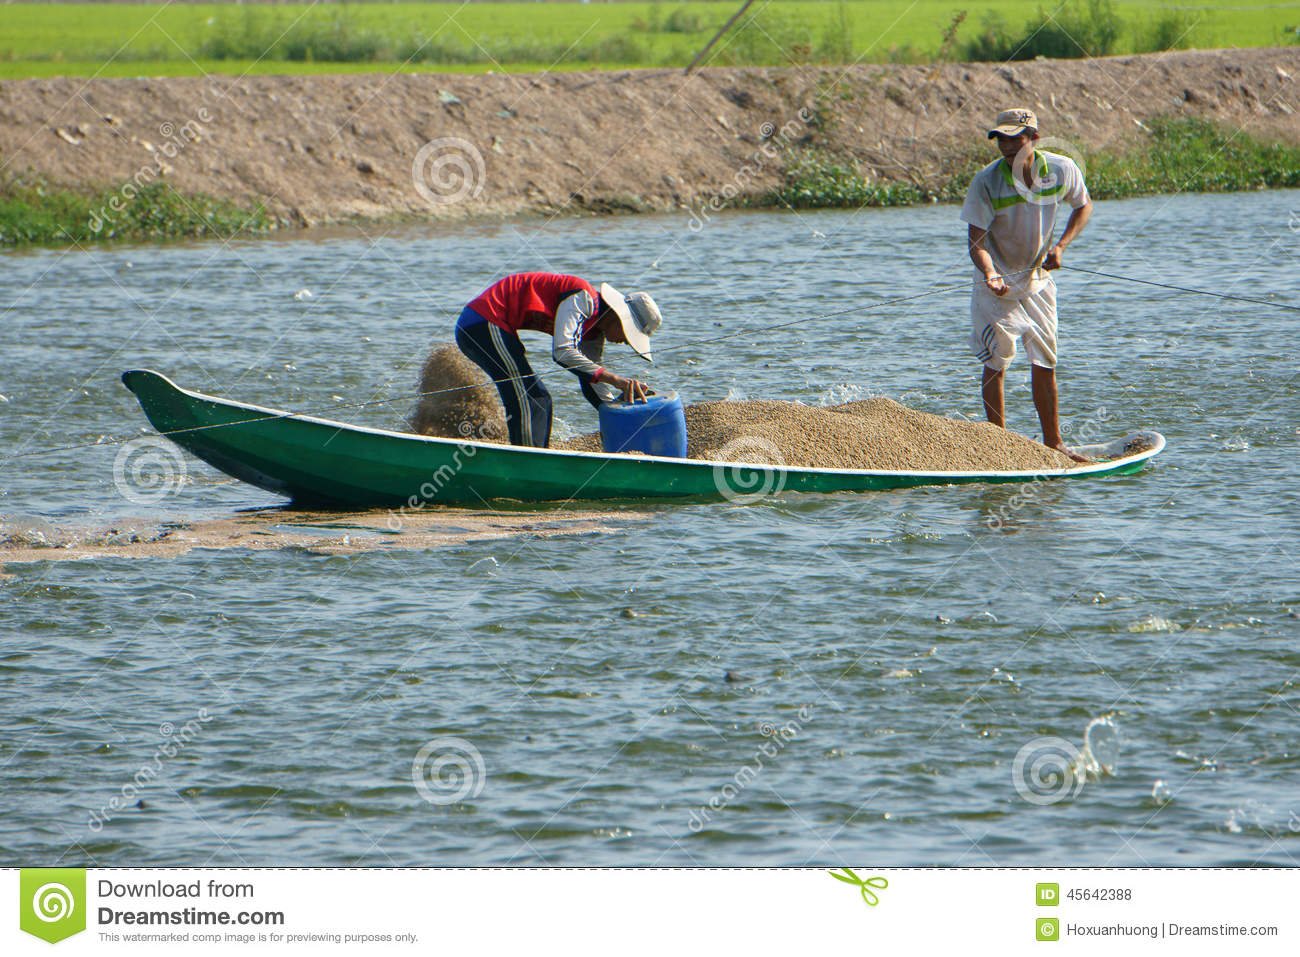 Editorial Stock Photo Asian Farmer Feeding Fish Pond Fishery Dong Thap Viet Nam Sept Two Work Lake Vietnamese Man Mekong Delta Has Many Heap Image45642388 on animal farm landscape